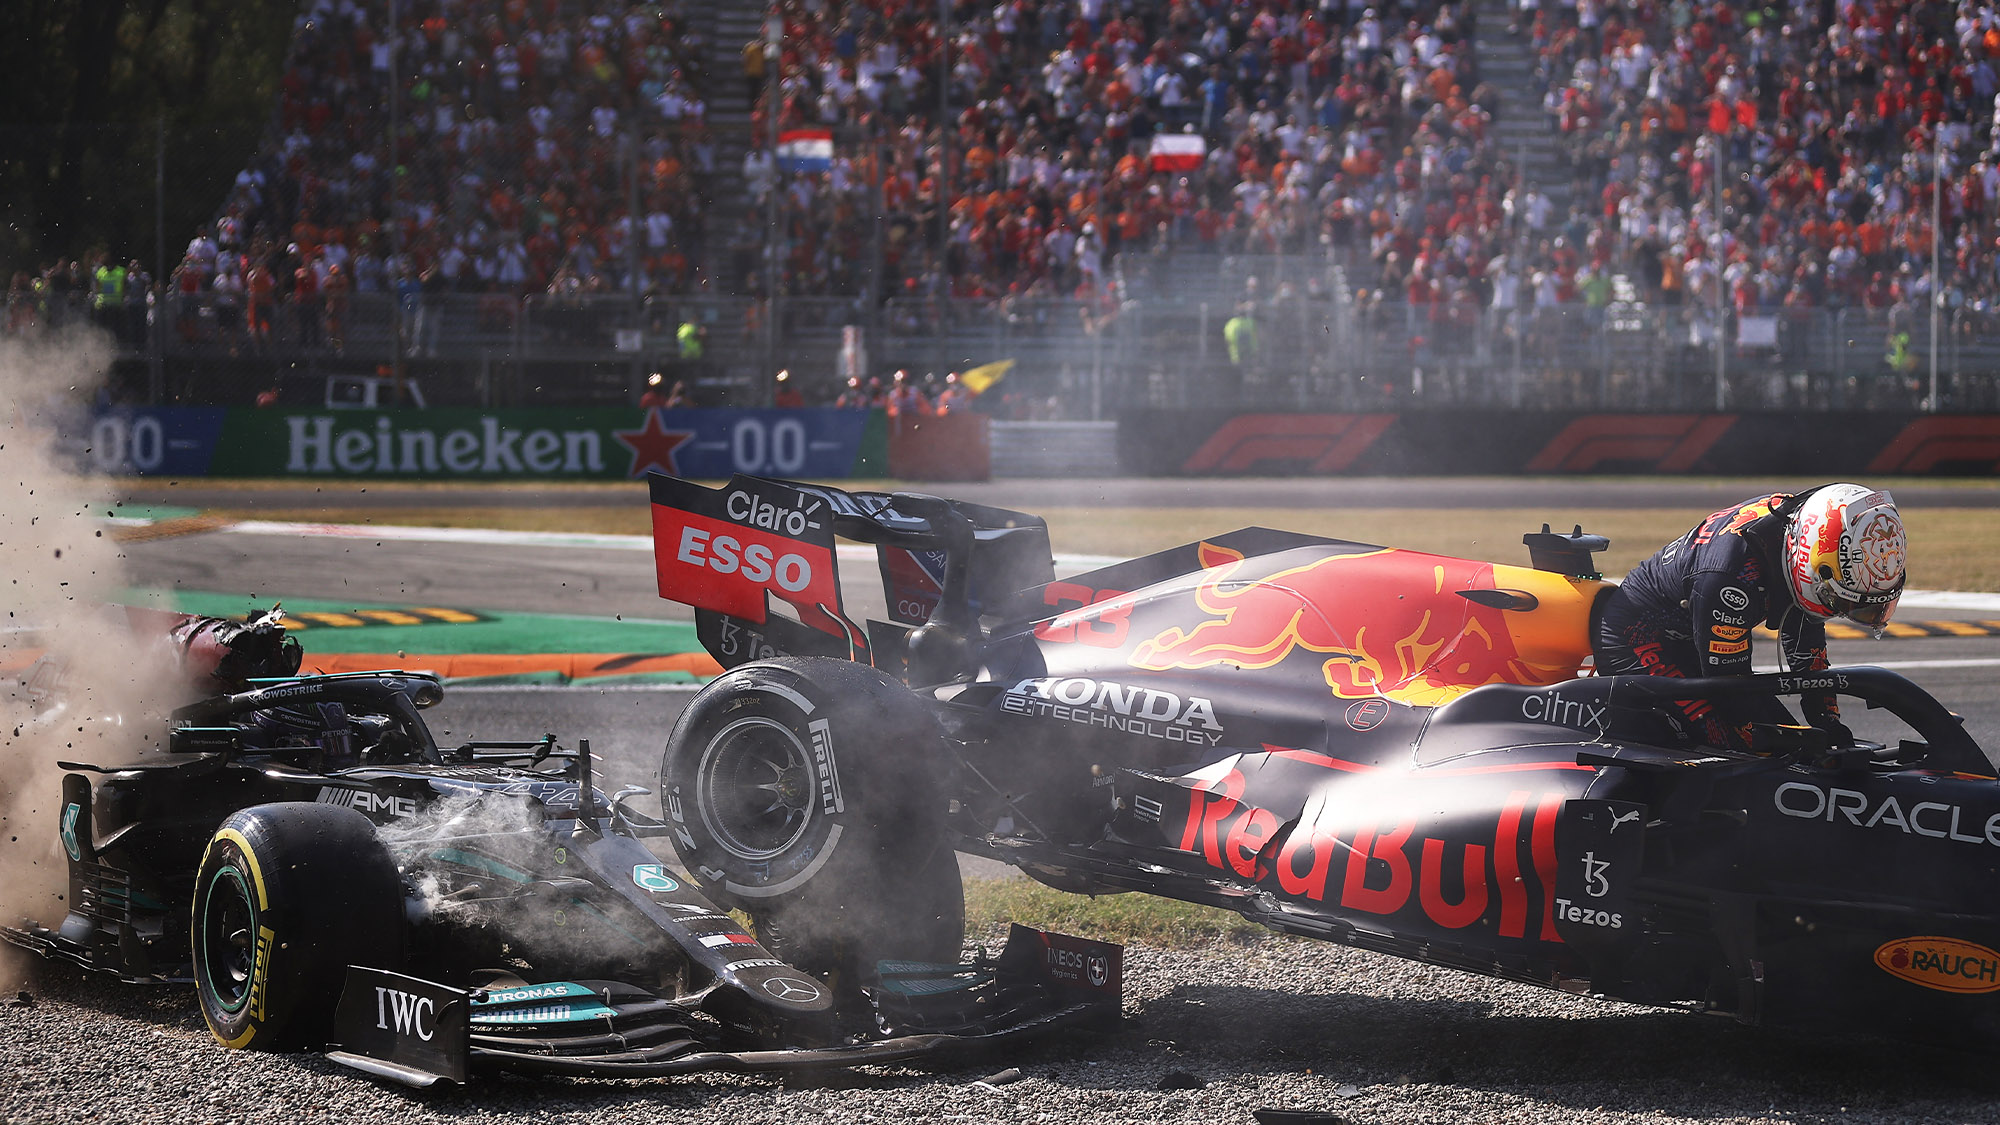 Max Verstappen climbs out of his Reb Bull after Hamilton Monza crash